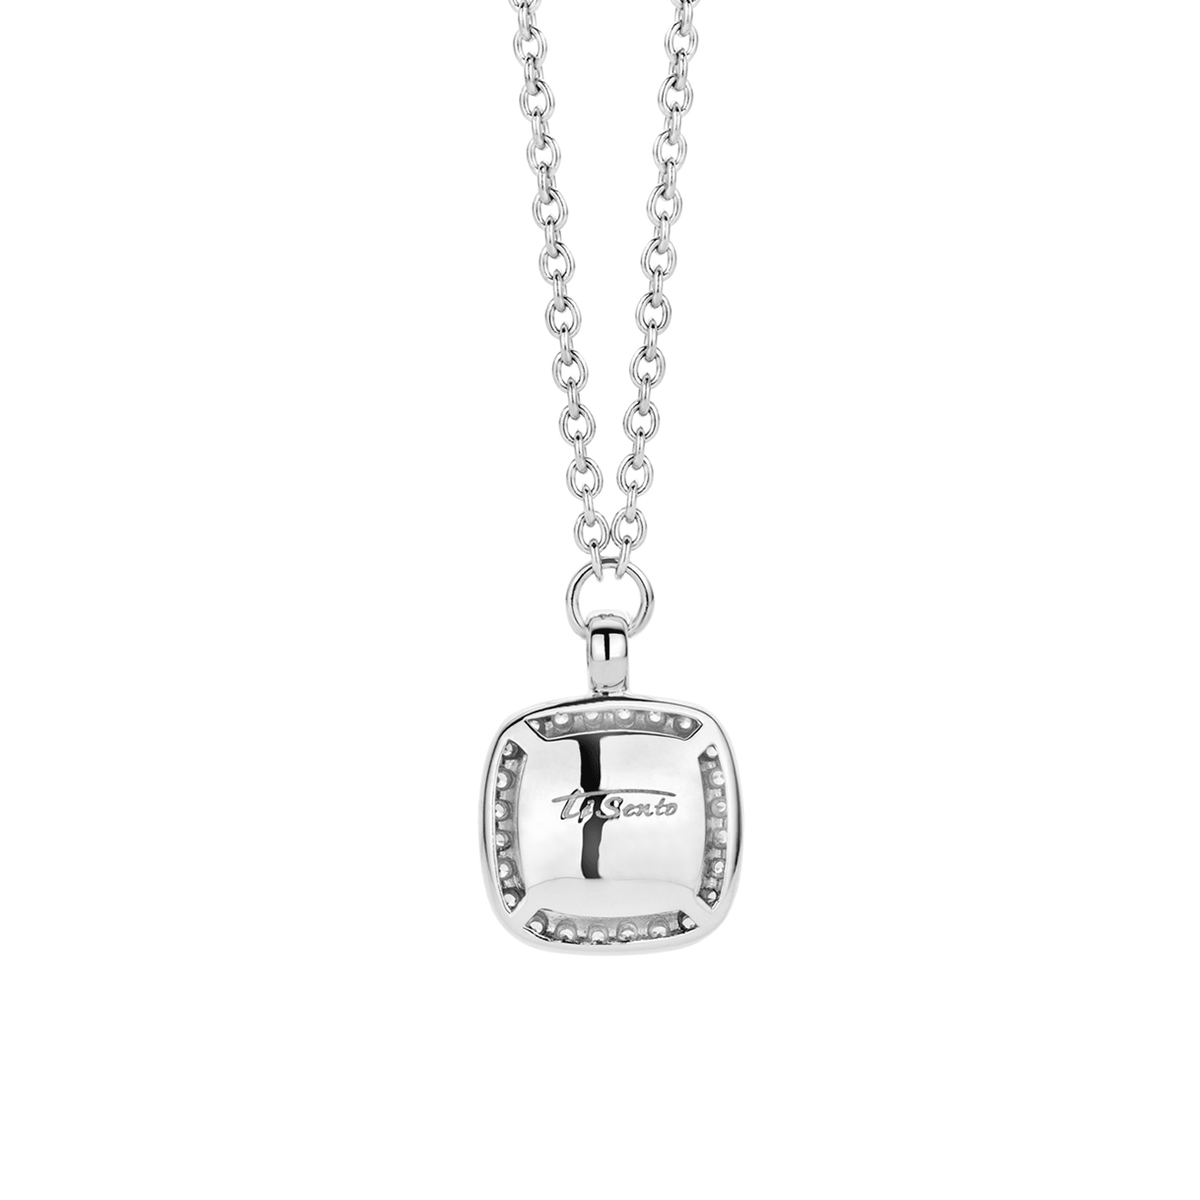 TI SENTO - Milano Necklace 3792MW